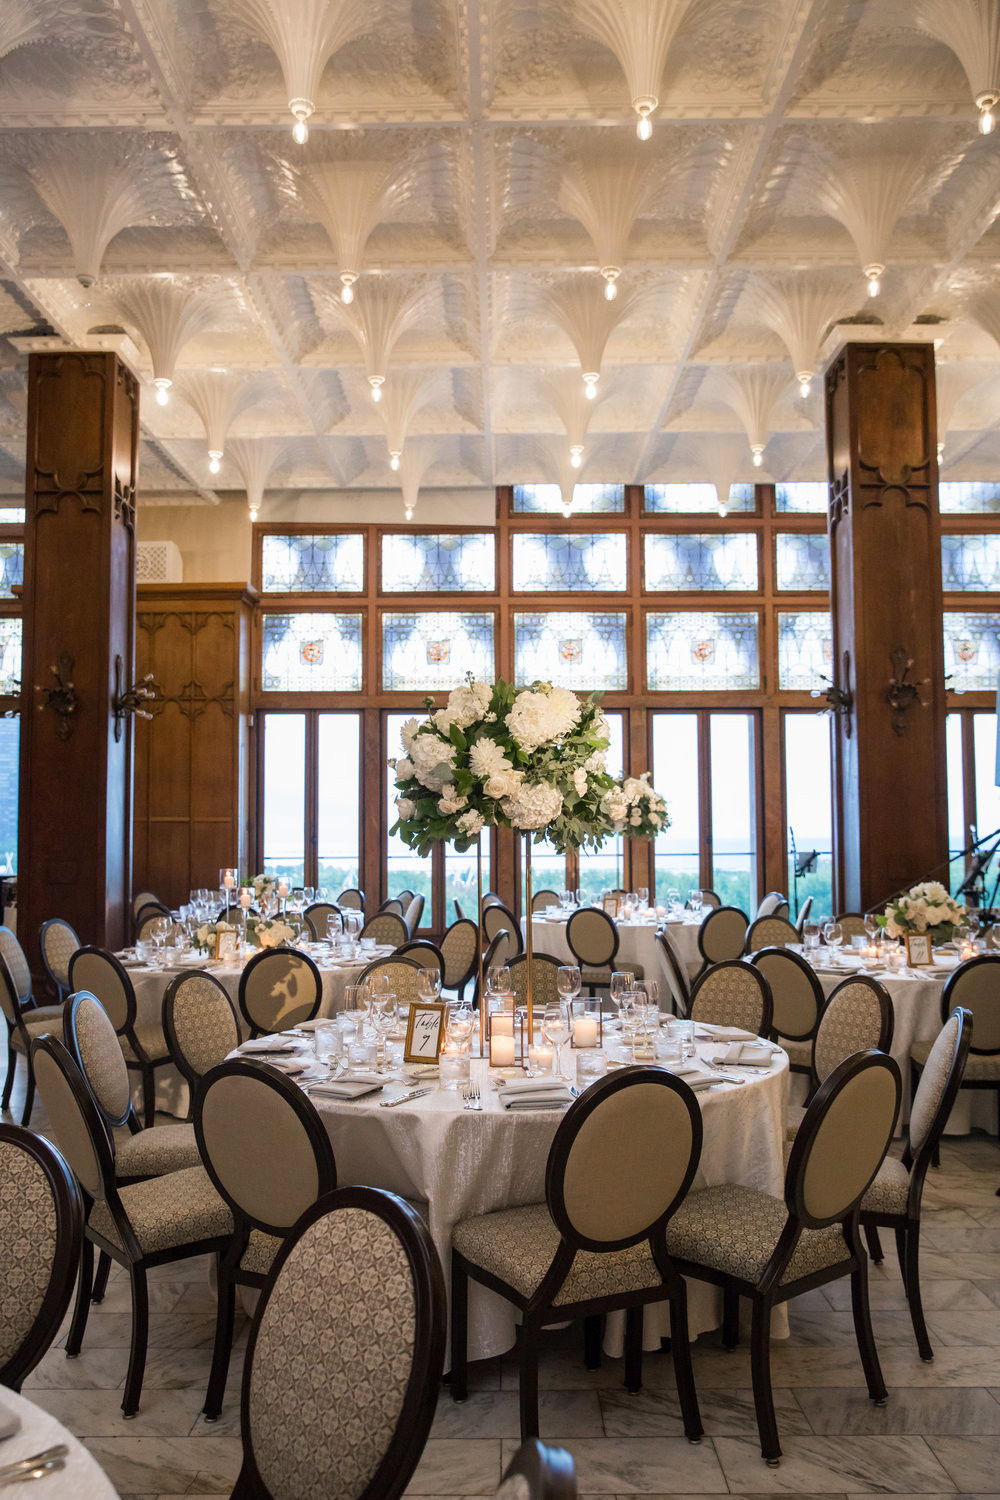 Wedding Flowers by Fleur Inc, Photo by Ann & Kam Photography, Planning by LK Events.  Wedding Reception in the White City Ballroom at the Chicago Athletic Association.